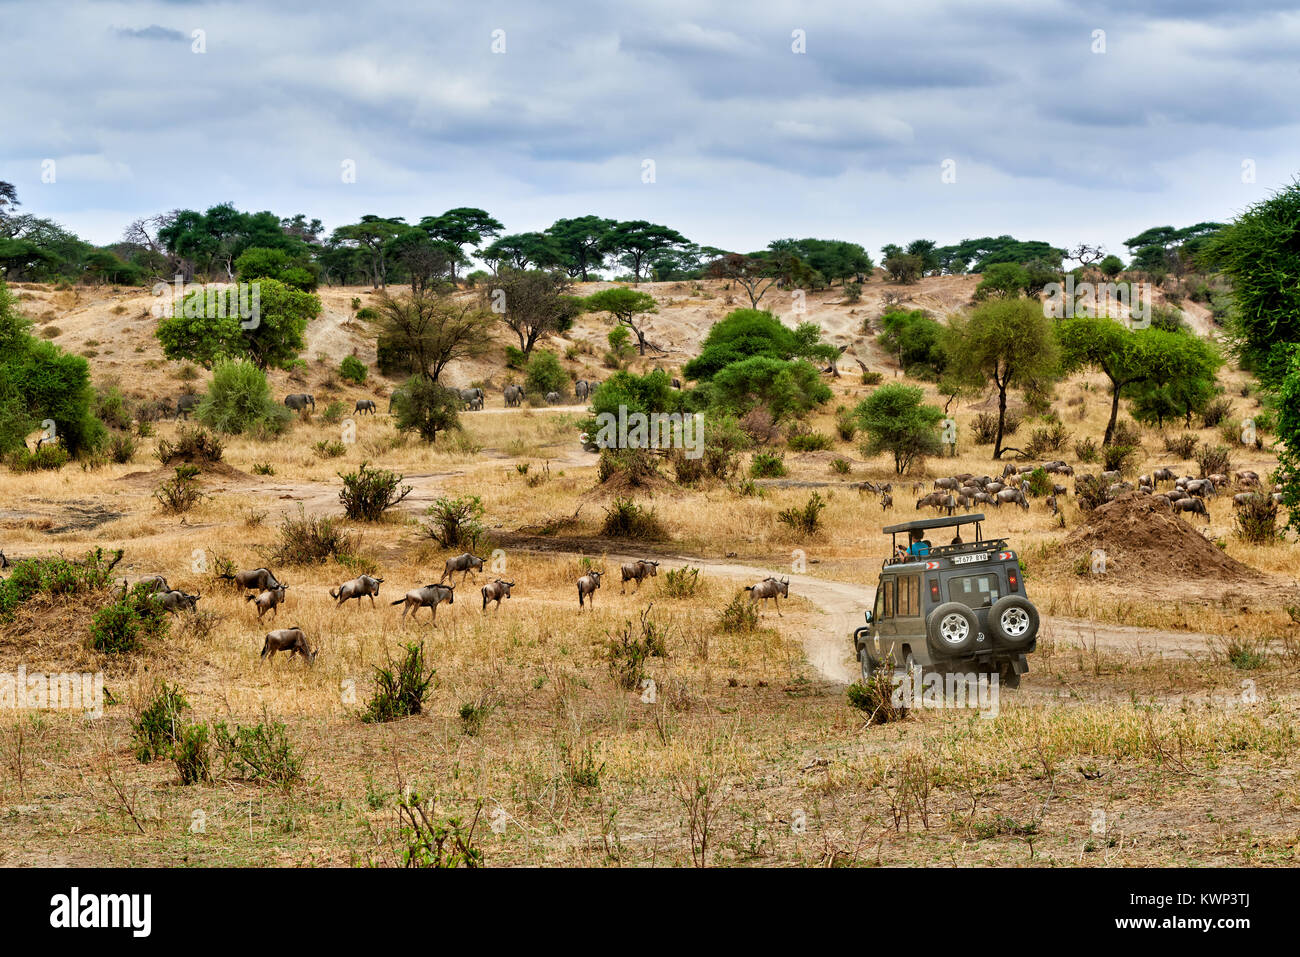 Le Gnou bleu et safari voiture sur vallée de Serengeti National Park, Tanzania, Africa Photo Stock